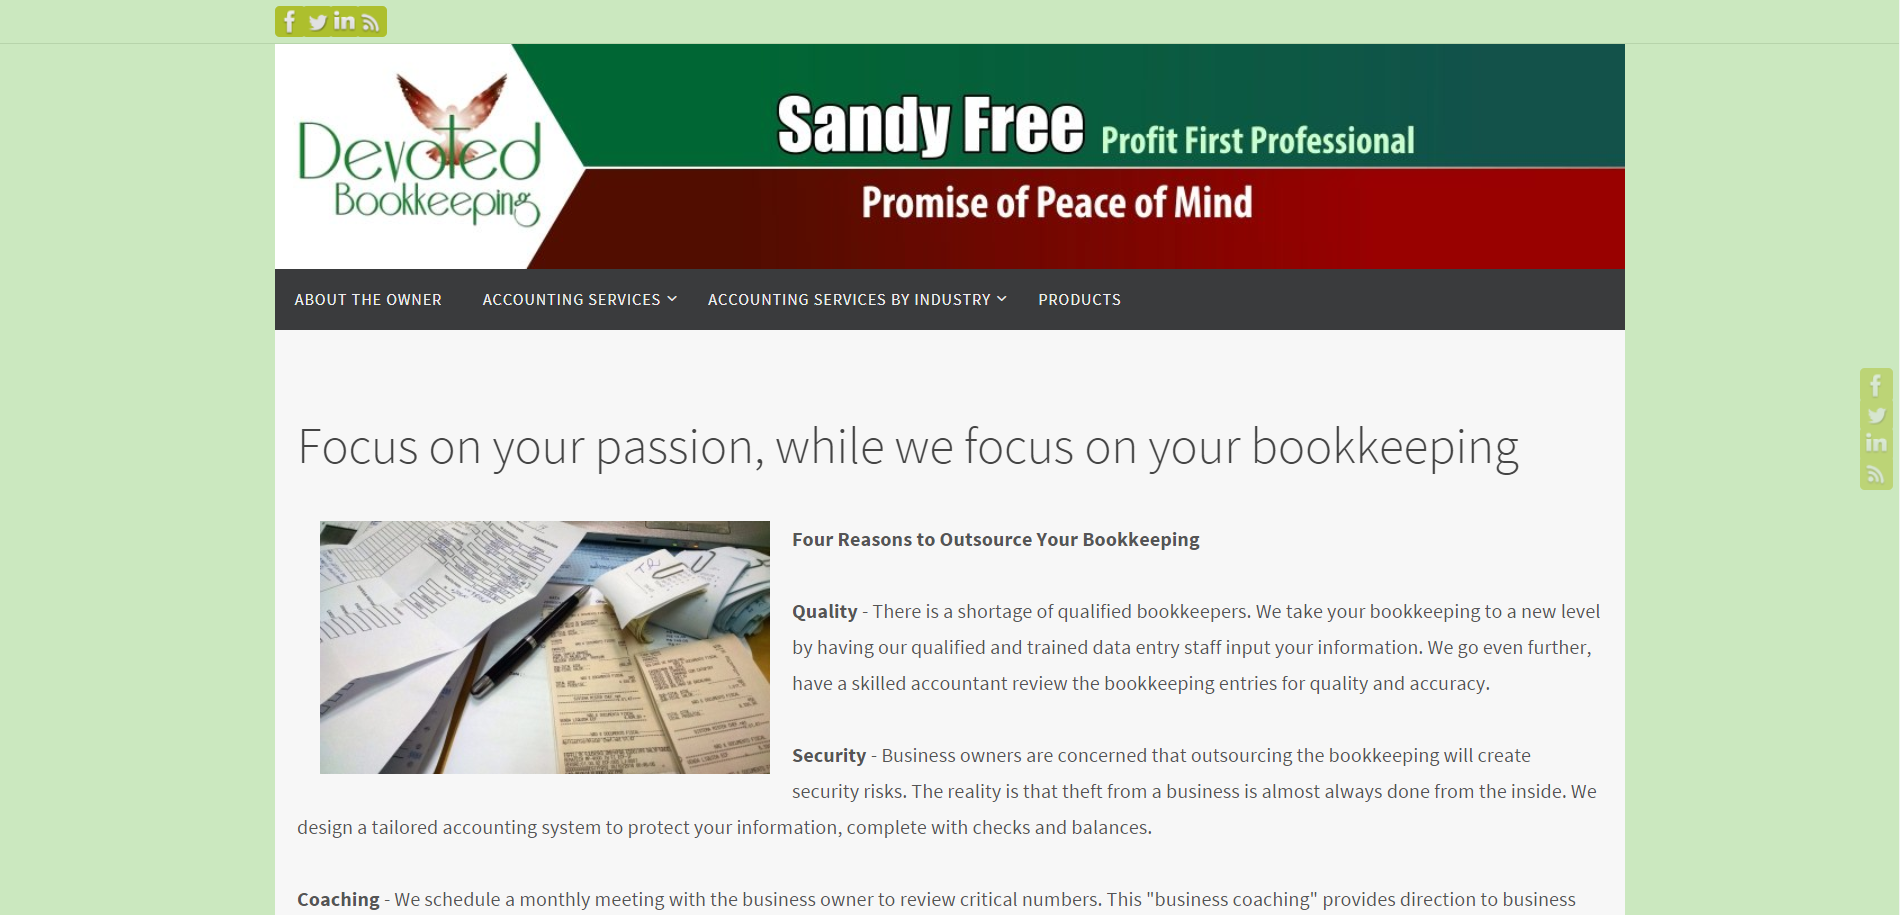 Devoted Bookkeeping website